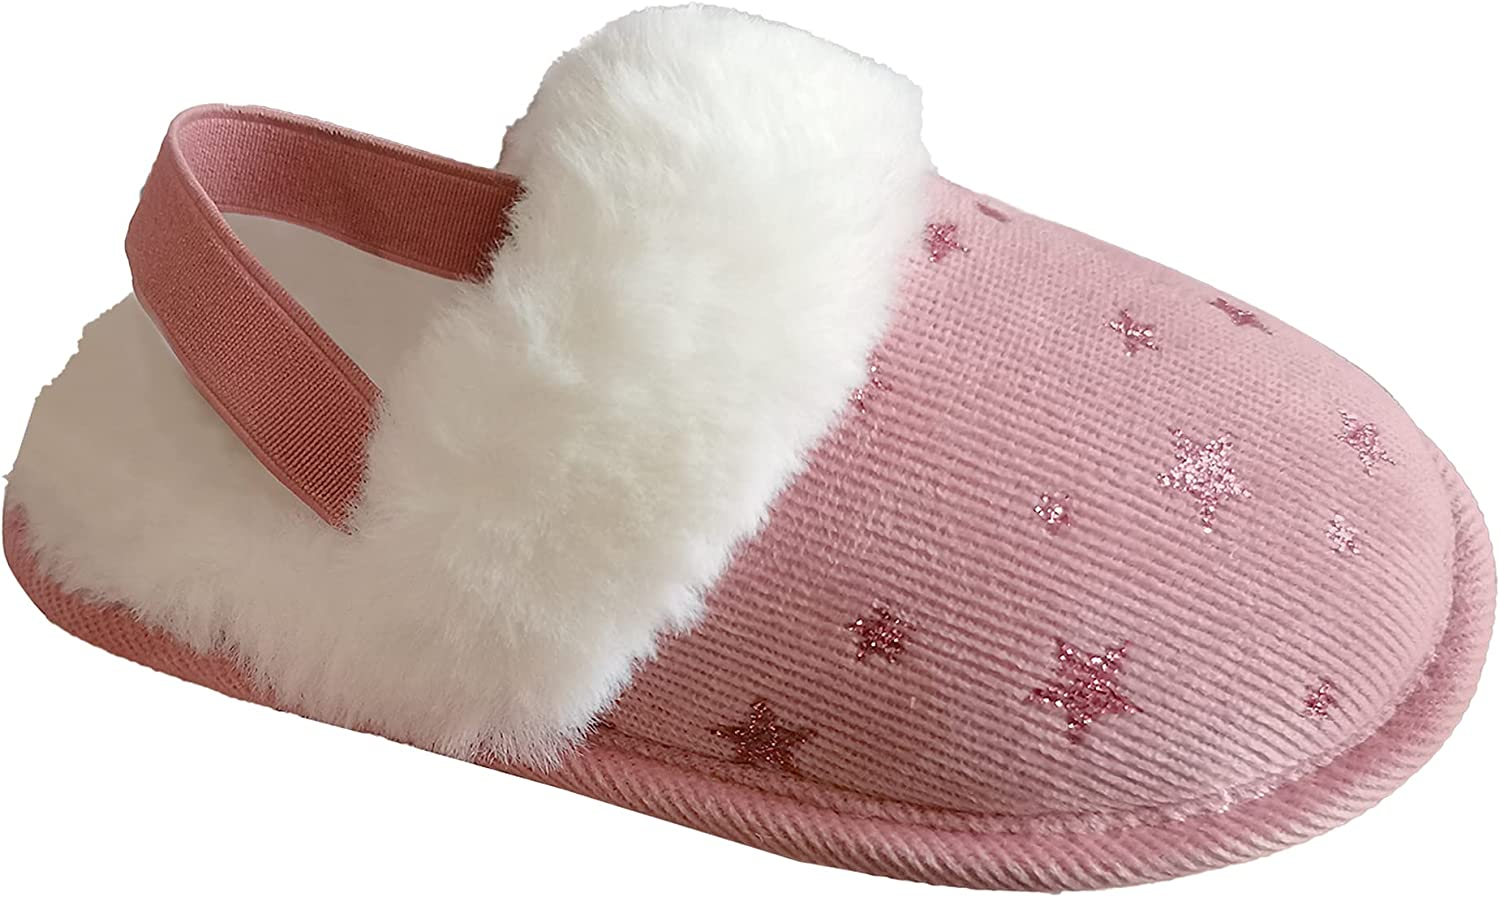 Tuboom Brand new Boys Girls Comfy Slippers House Kids Fa Cute for Ranking TOP11